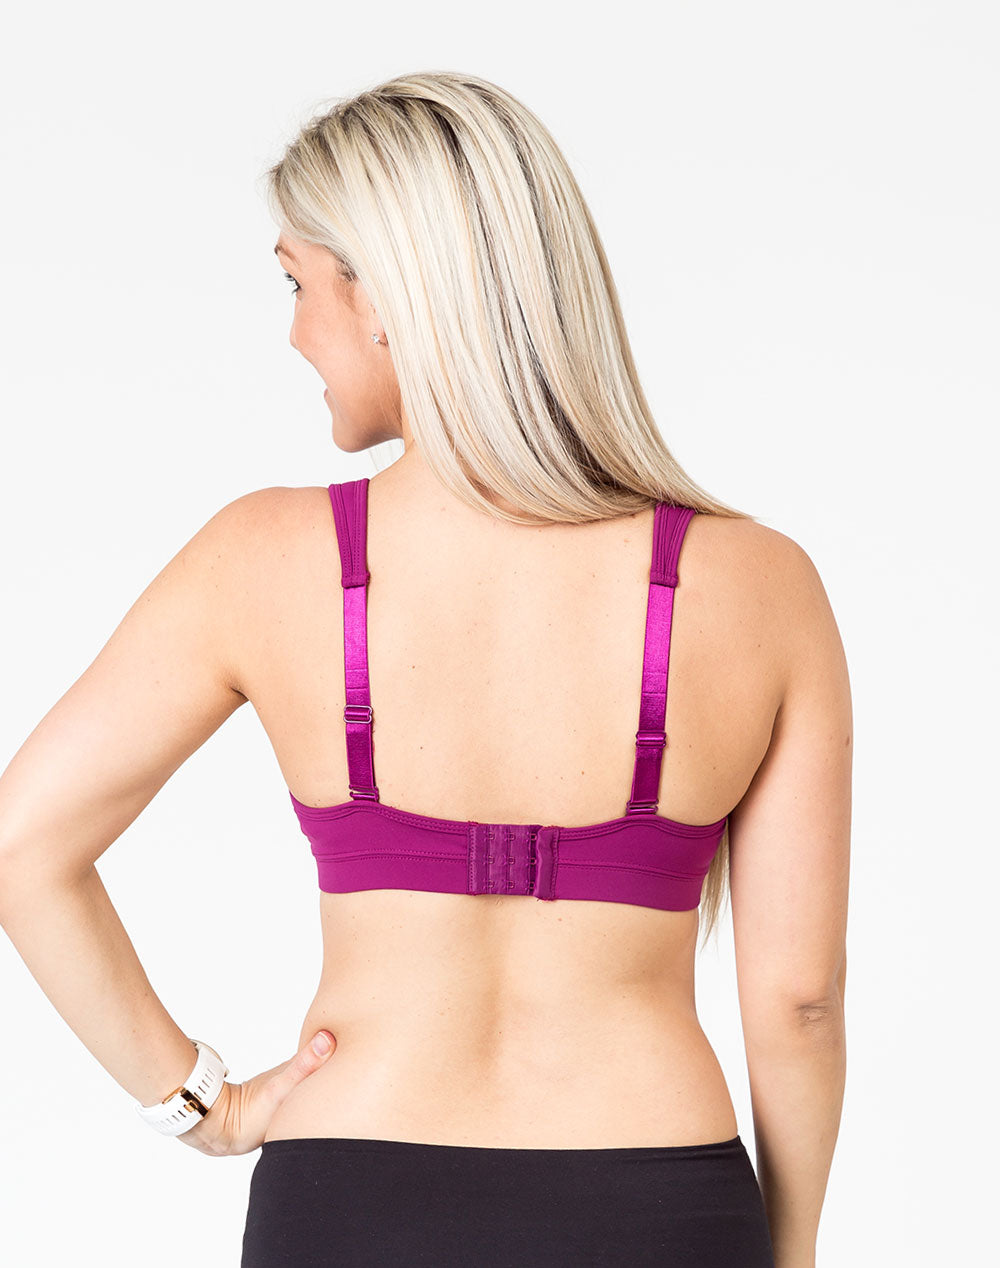 pregnant mum wearing a plum playtime bra back view with option to wear as a normal bra